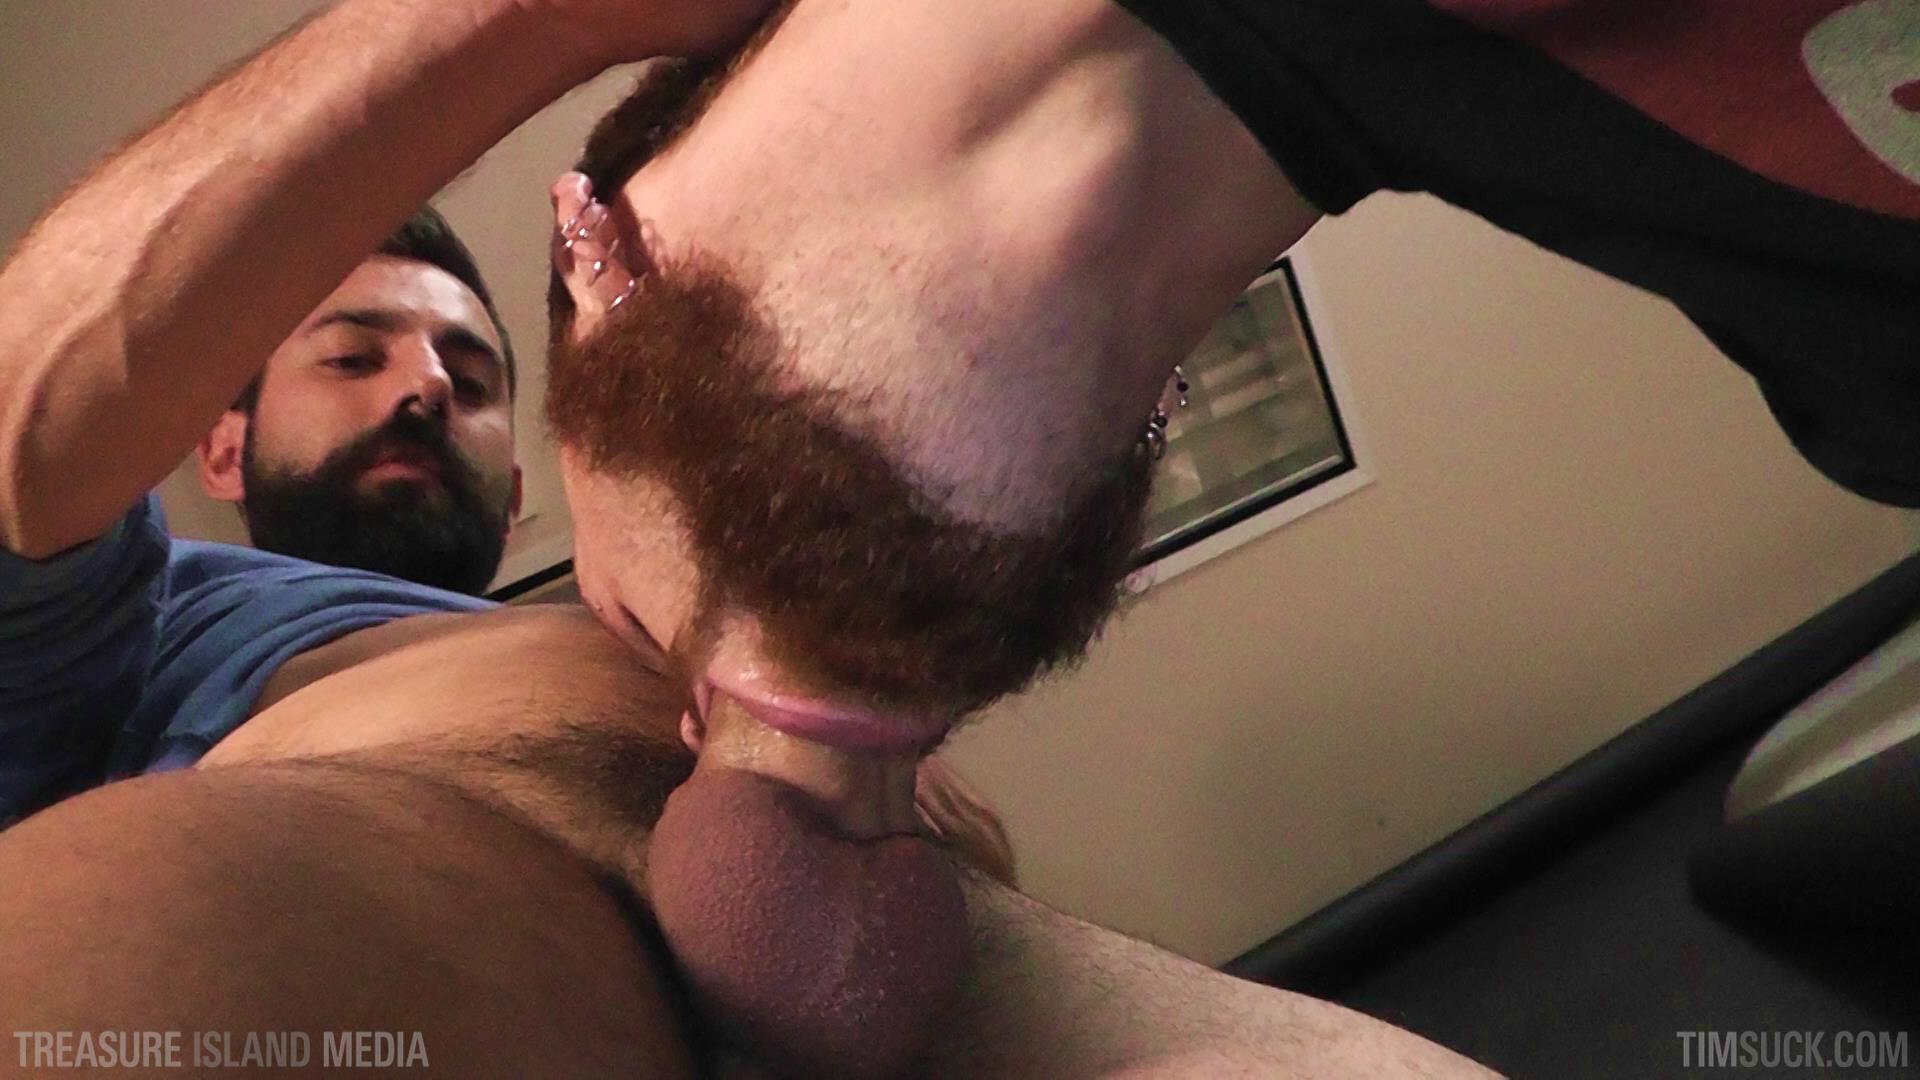 Treasure Island Media TimSuck Pete Summers and Dean Brody Sucking A Big Uncut Cock Amateur Gay Porn 01 Bearded Ginger Services A Big Uncut Cock And Eats The Cum